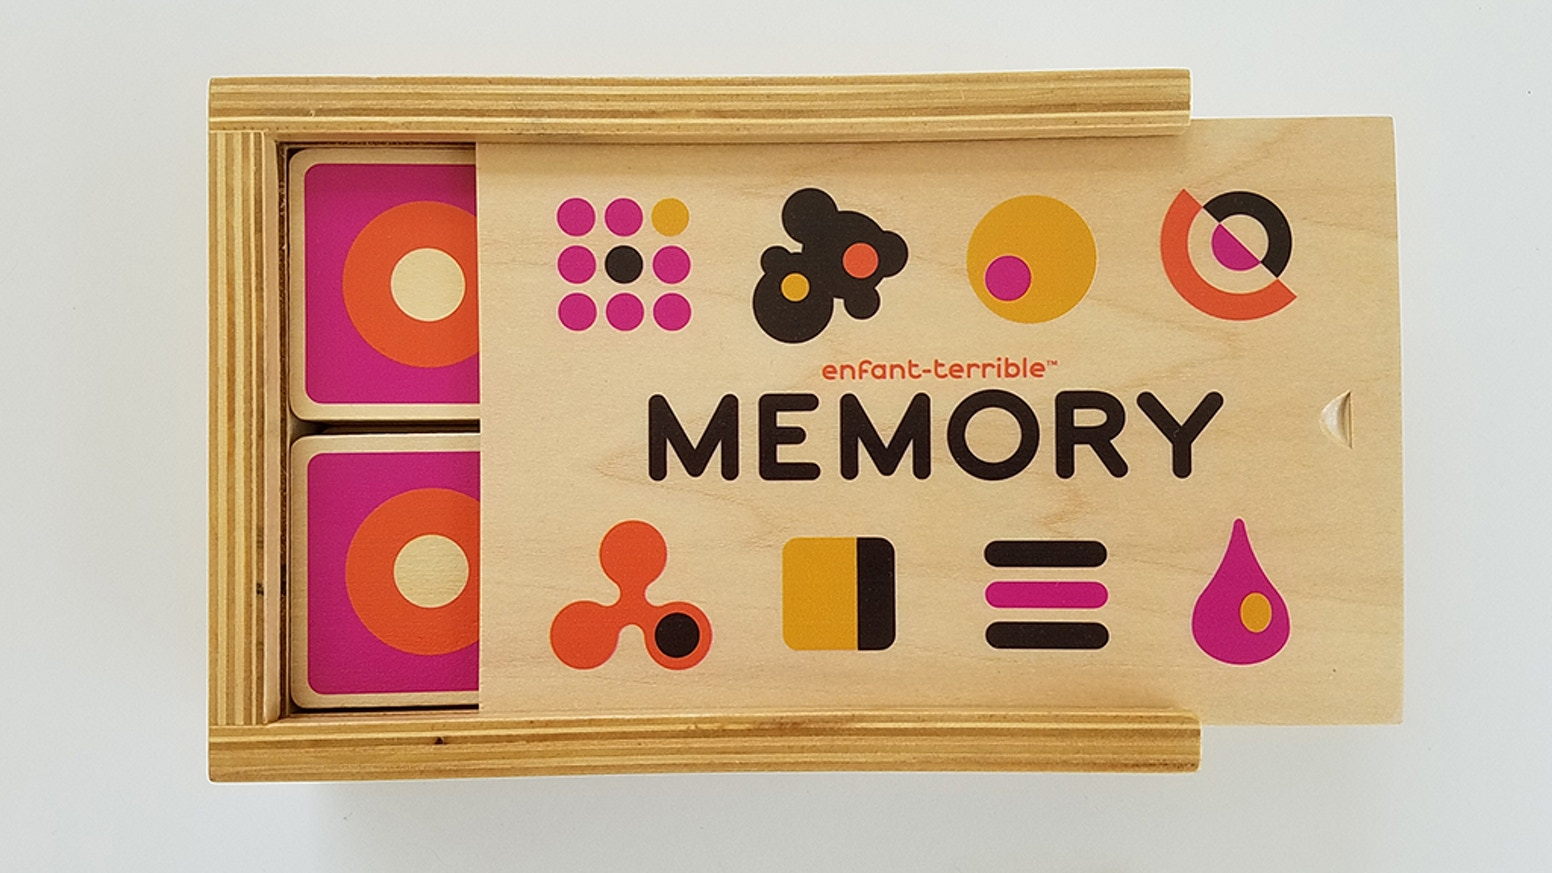 48 pcs wooden memory game with colorful abstract icons silkscreened on both sides.  In classic wooden storage box. Generations of fun!